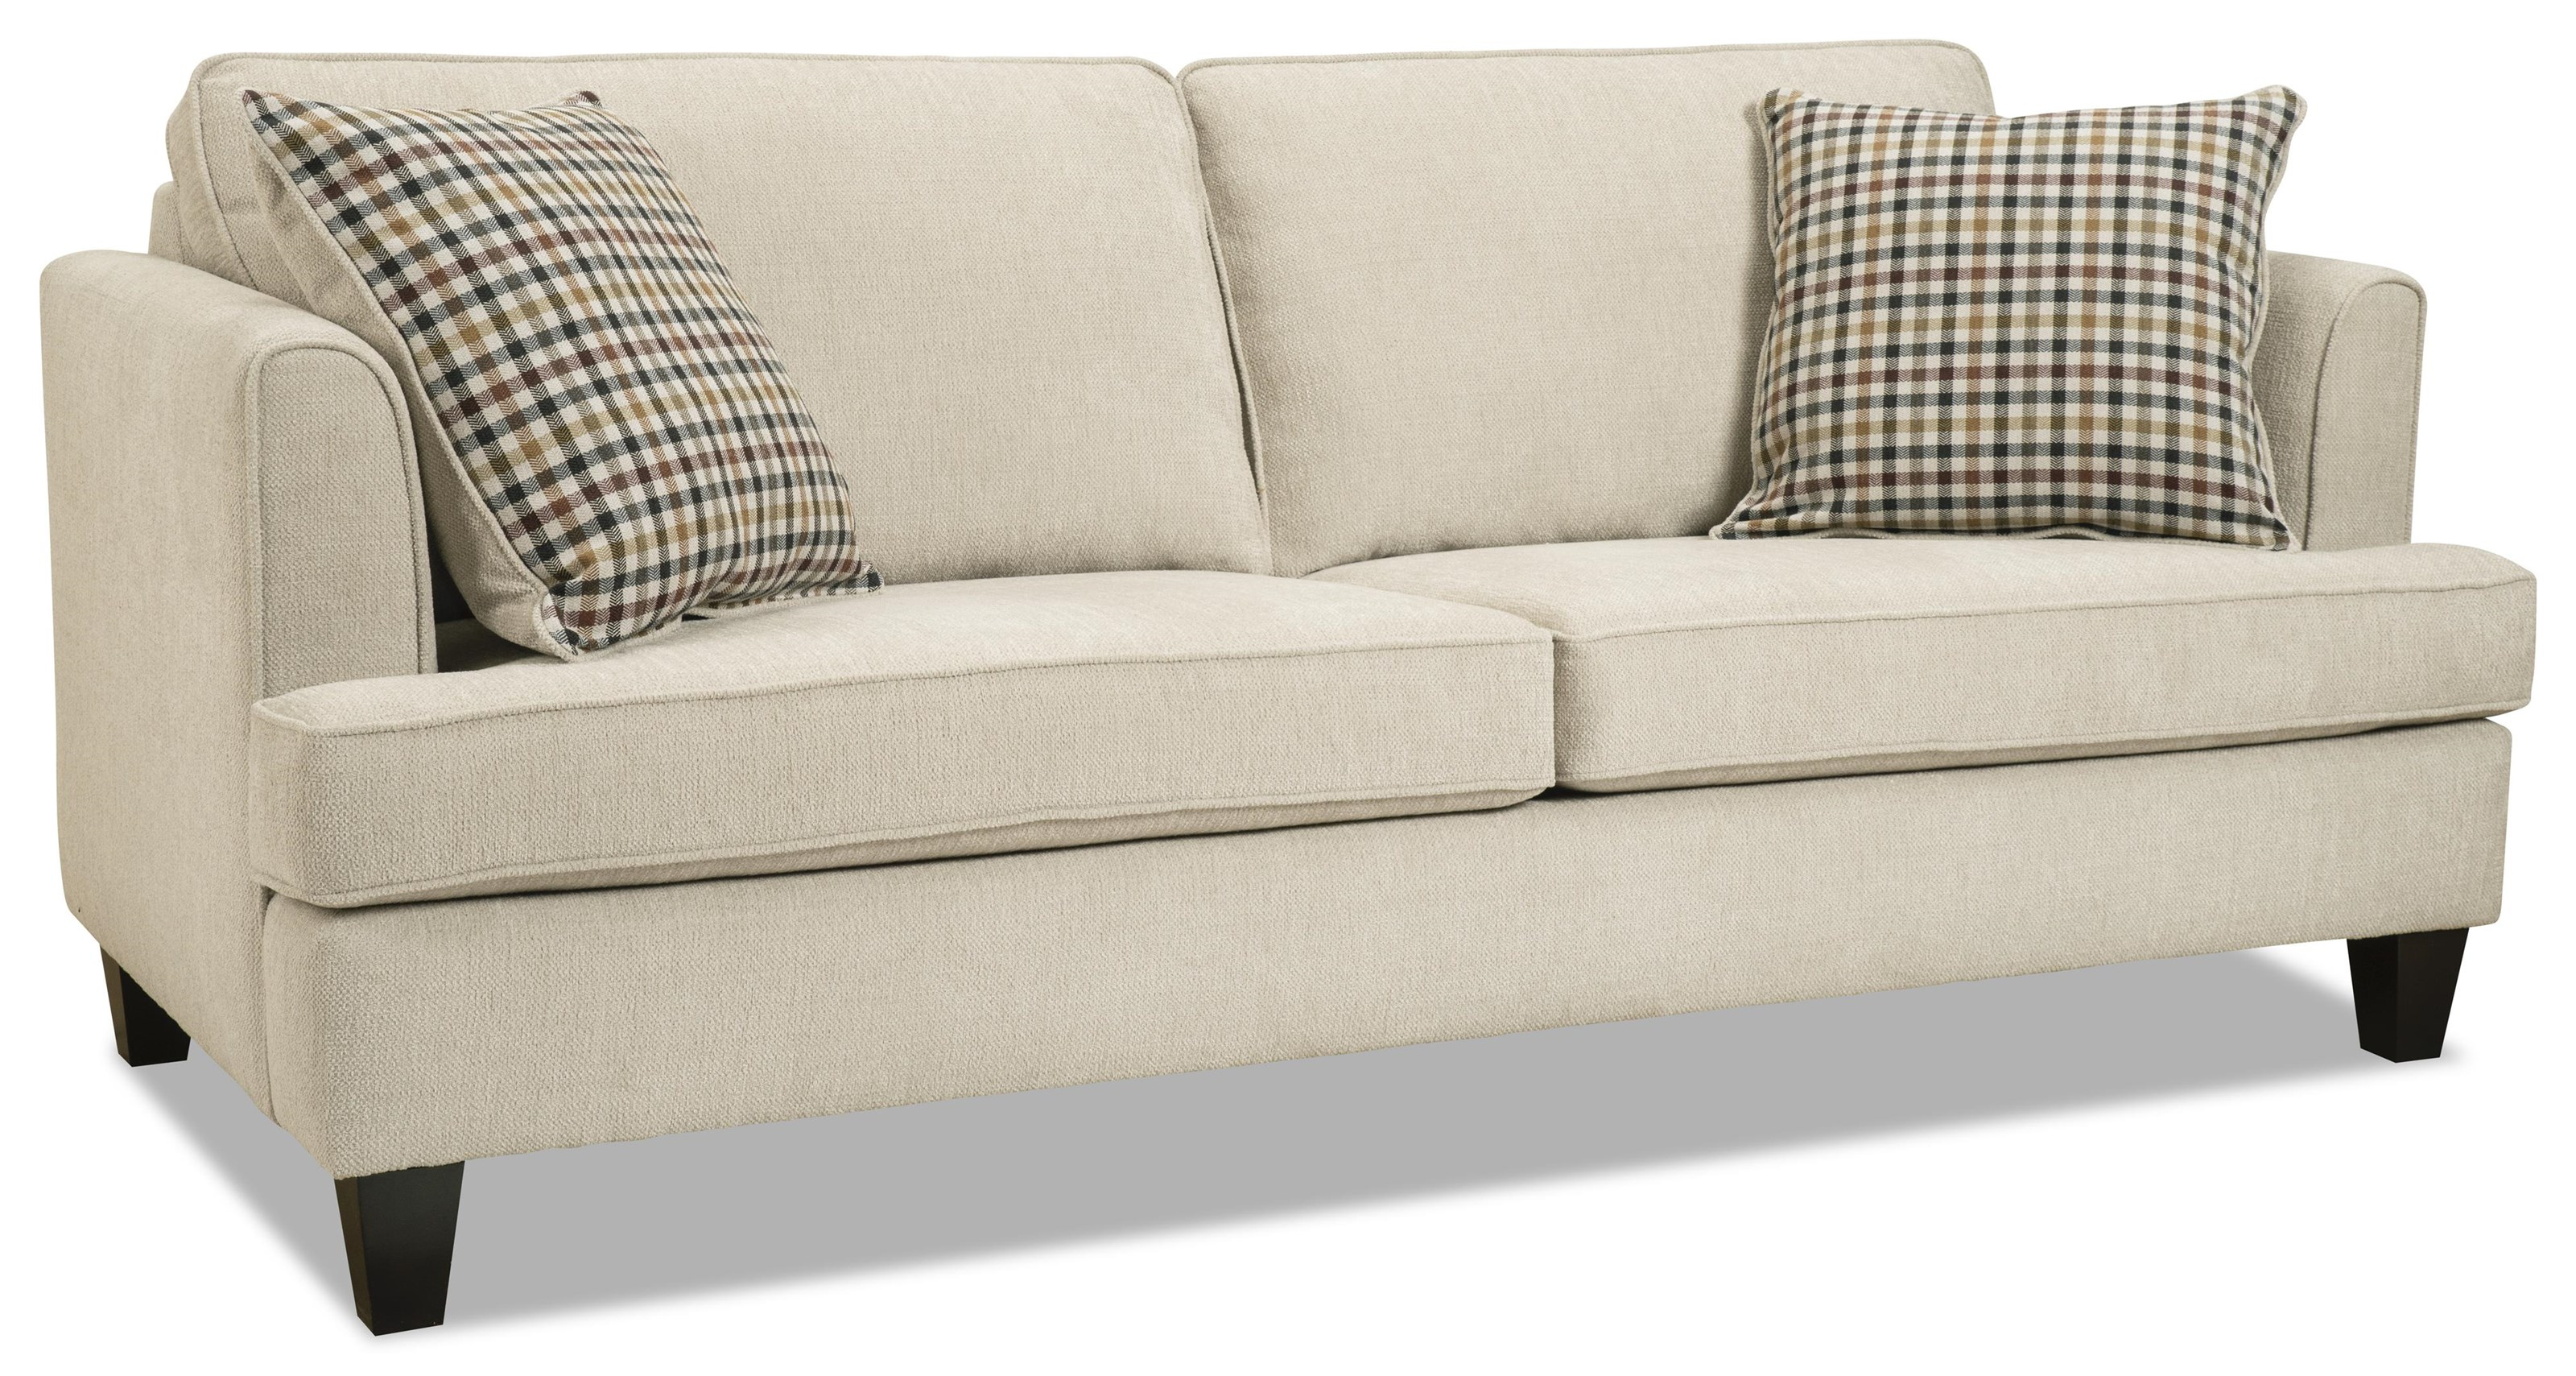 Bexon Sofa by Southside Designs at Bennett's Furniture and Mattresses